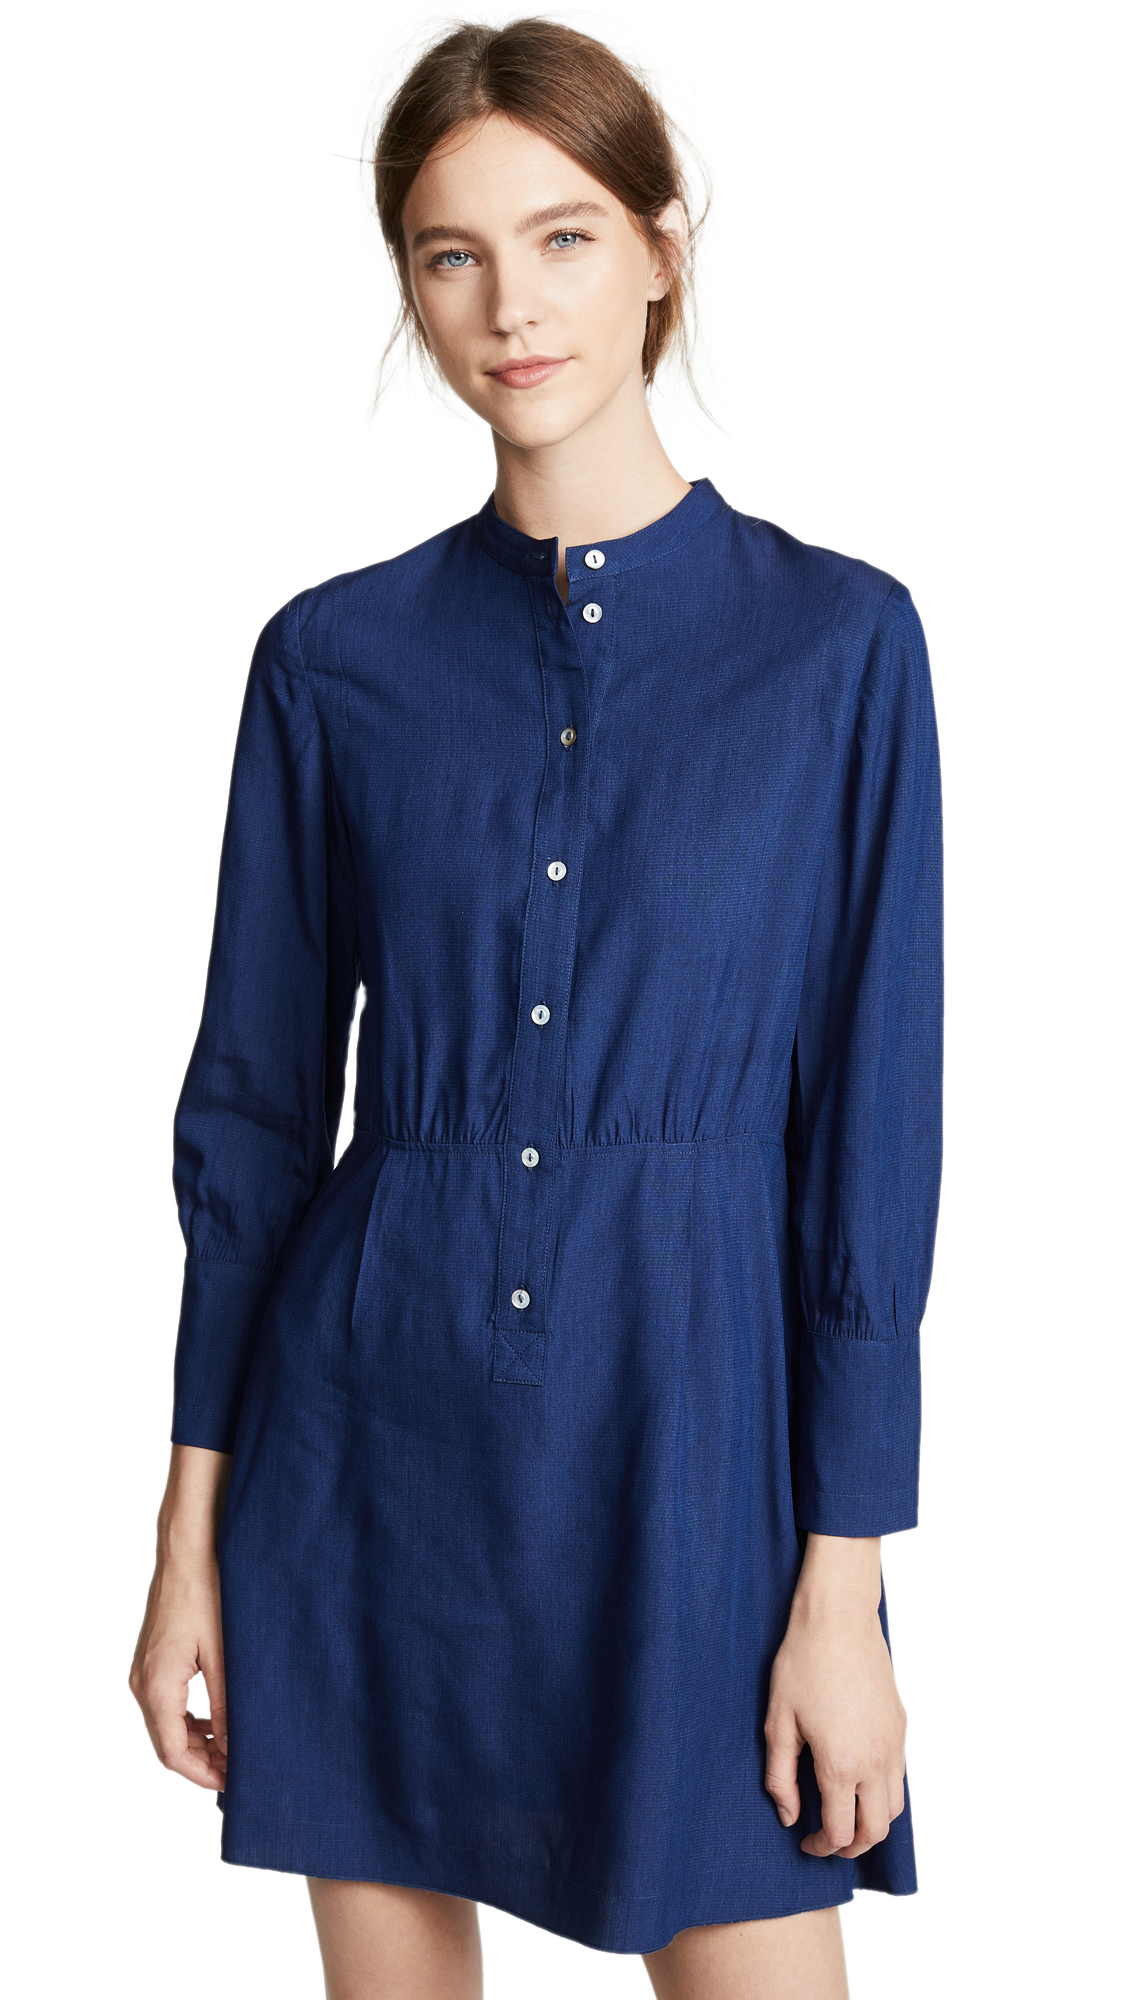 A.P.C. Kimya Dress In Indigo